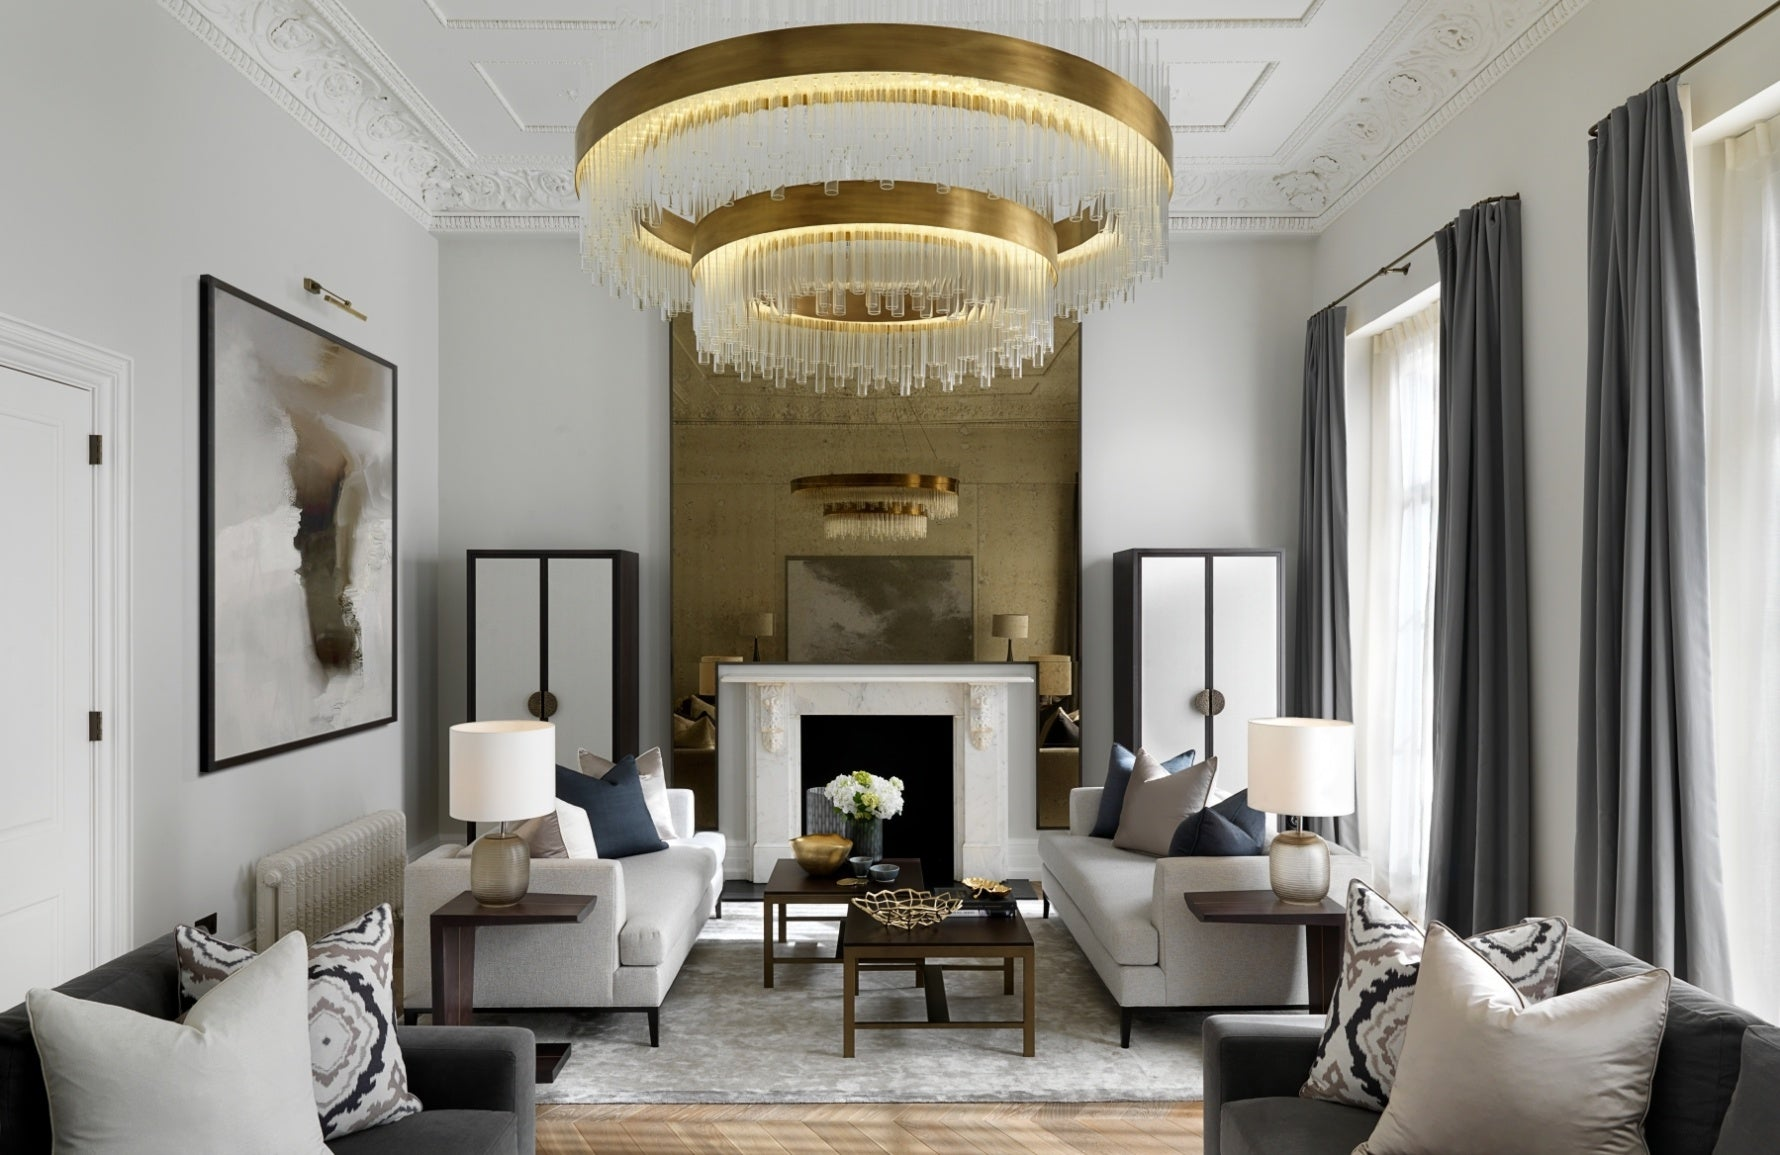 How To Decorate A Large Living Room | Interior by Laura Hammett | Read more in the LuxDeco.com Style Guide